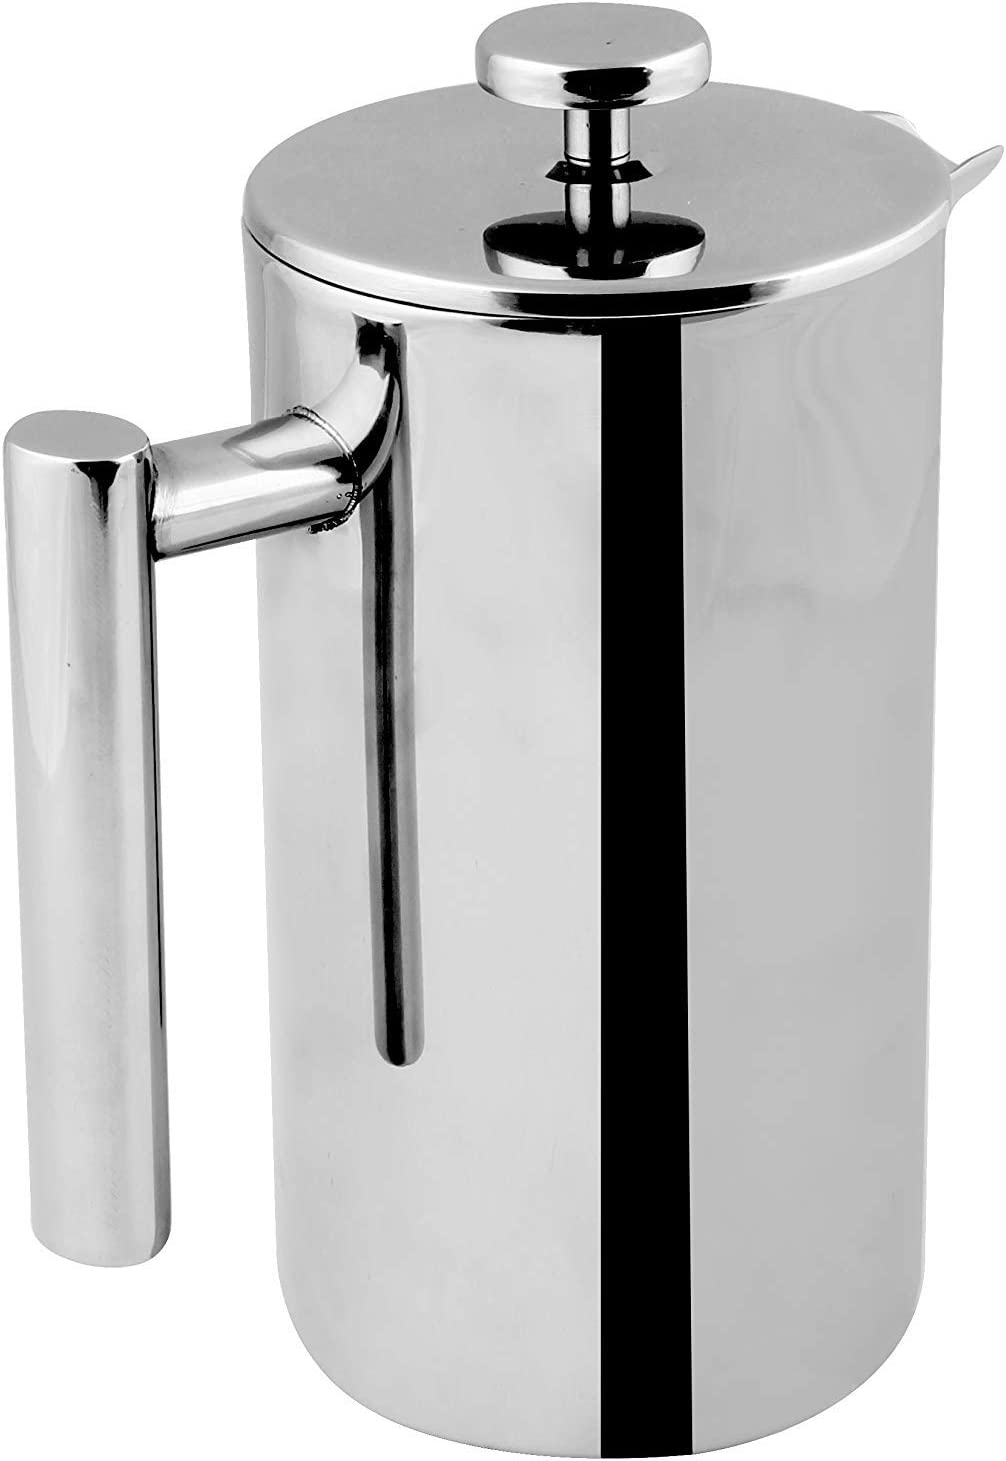 Utopia Kitchen French Press Coffee Maker – French Coffee Press – Bulk Pack of 12 – Double Walled 32 oz Espresso Tea Maker – 100 Stainless Steel – Dishwasher Safe